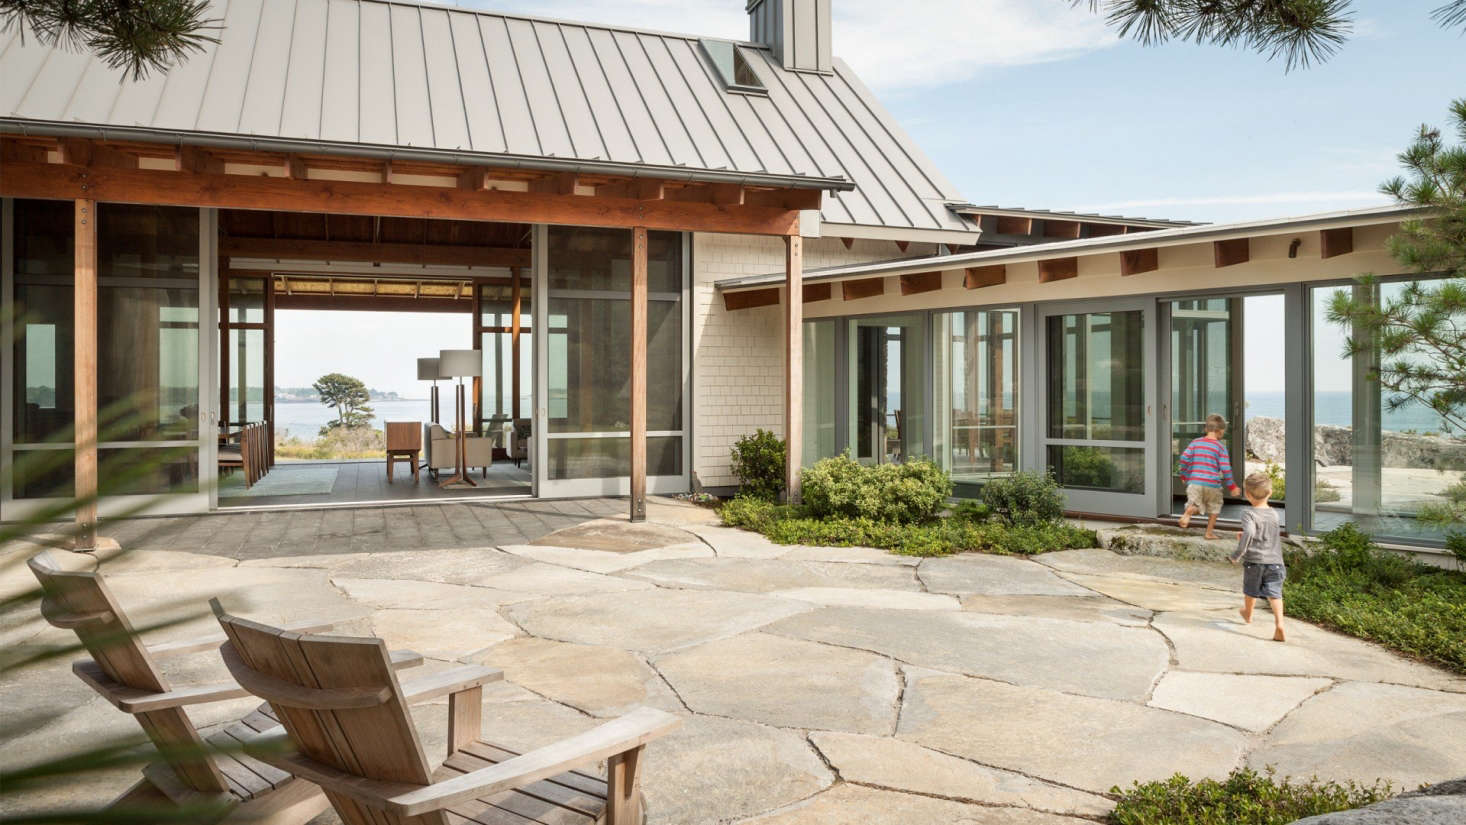 A glass walkway connects the main living volume to the bedroom wing. Sliding glass doors link the courtyard to the fire pit beyond.